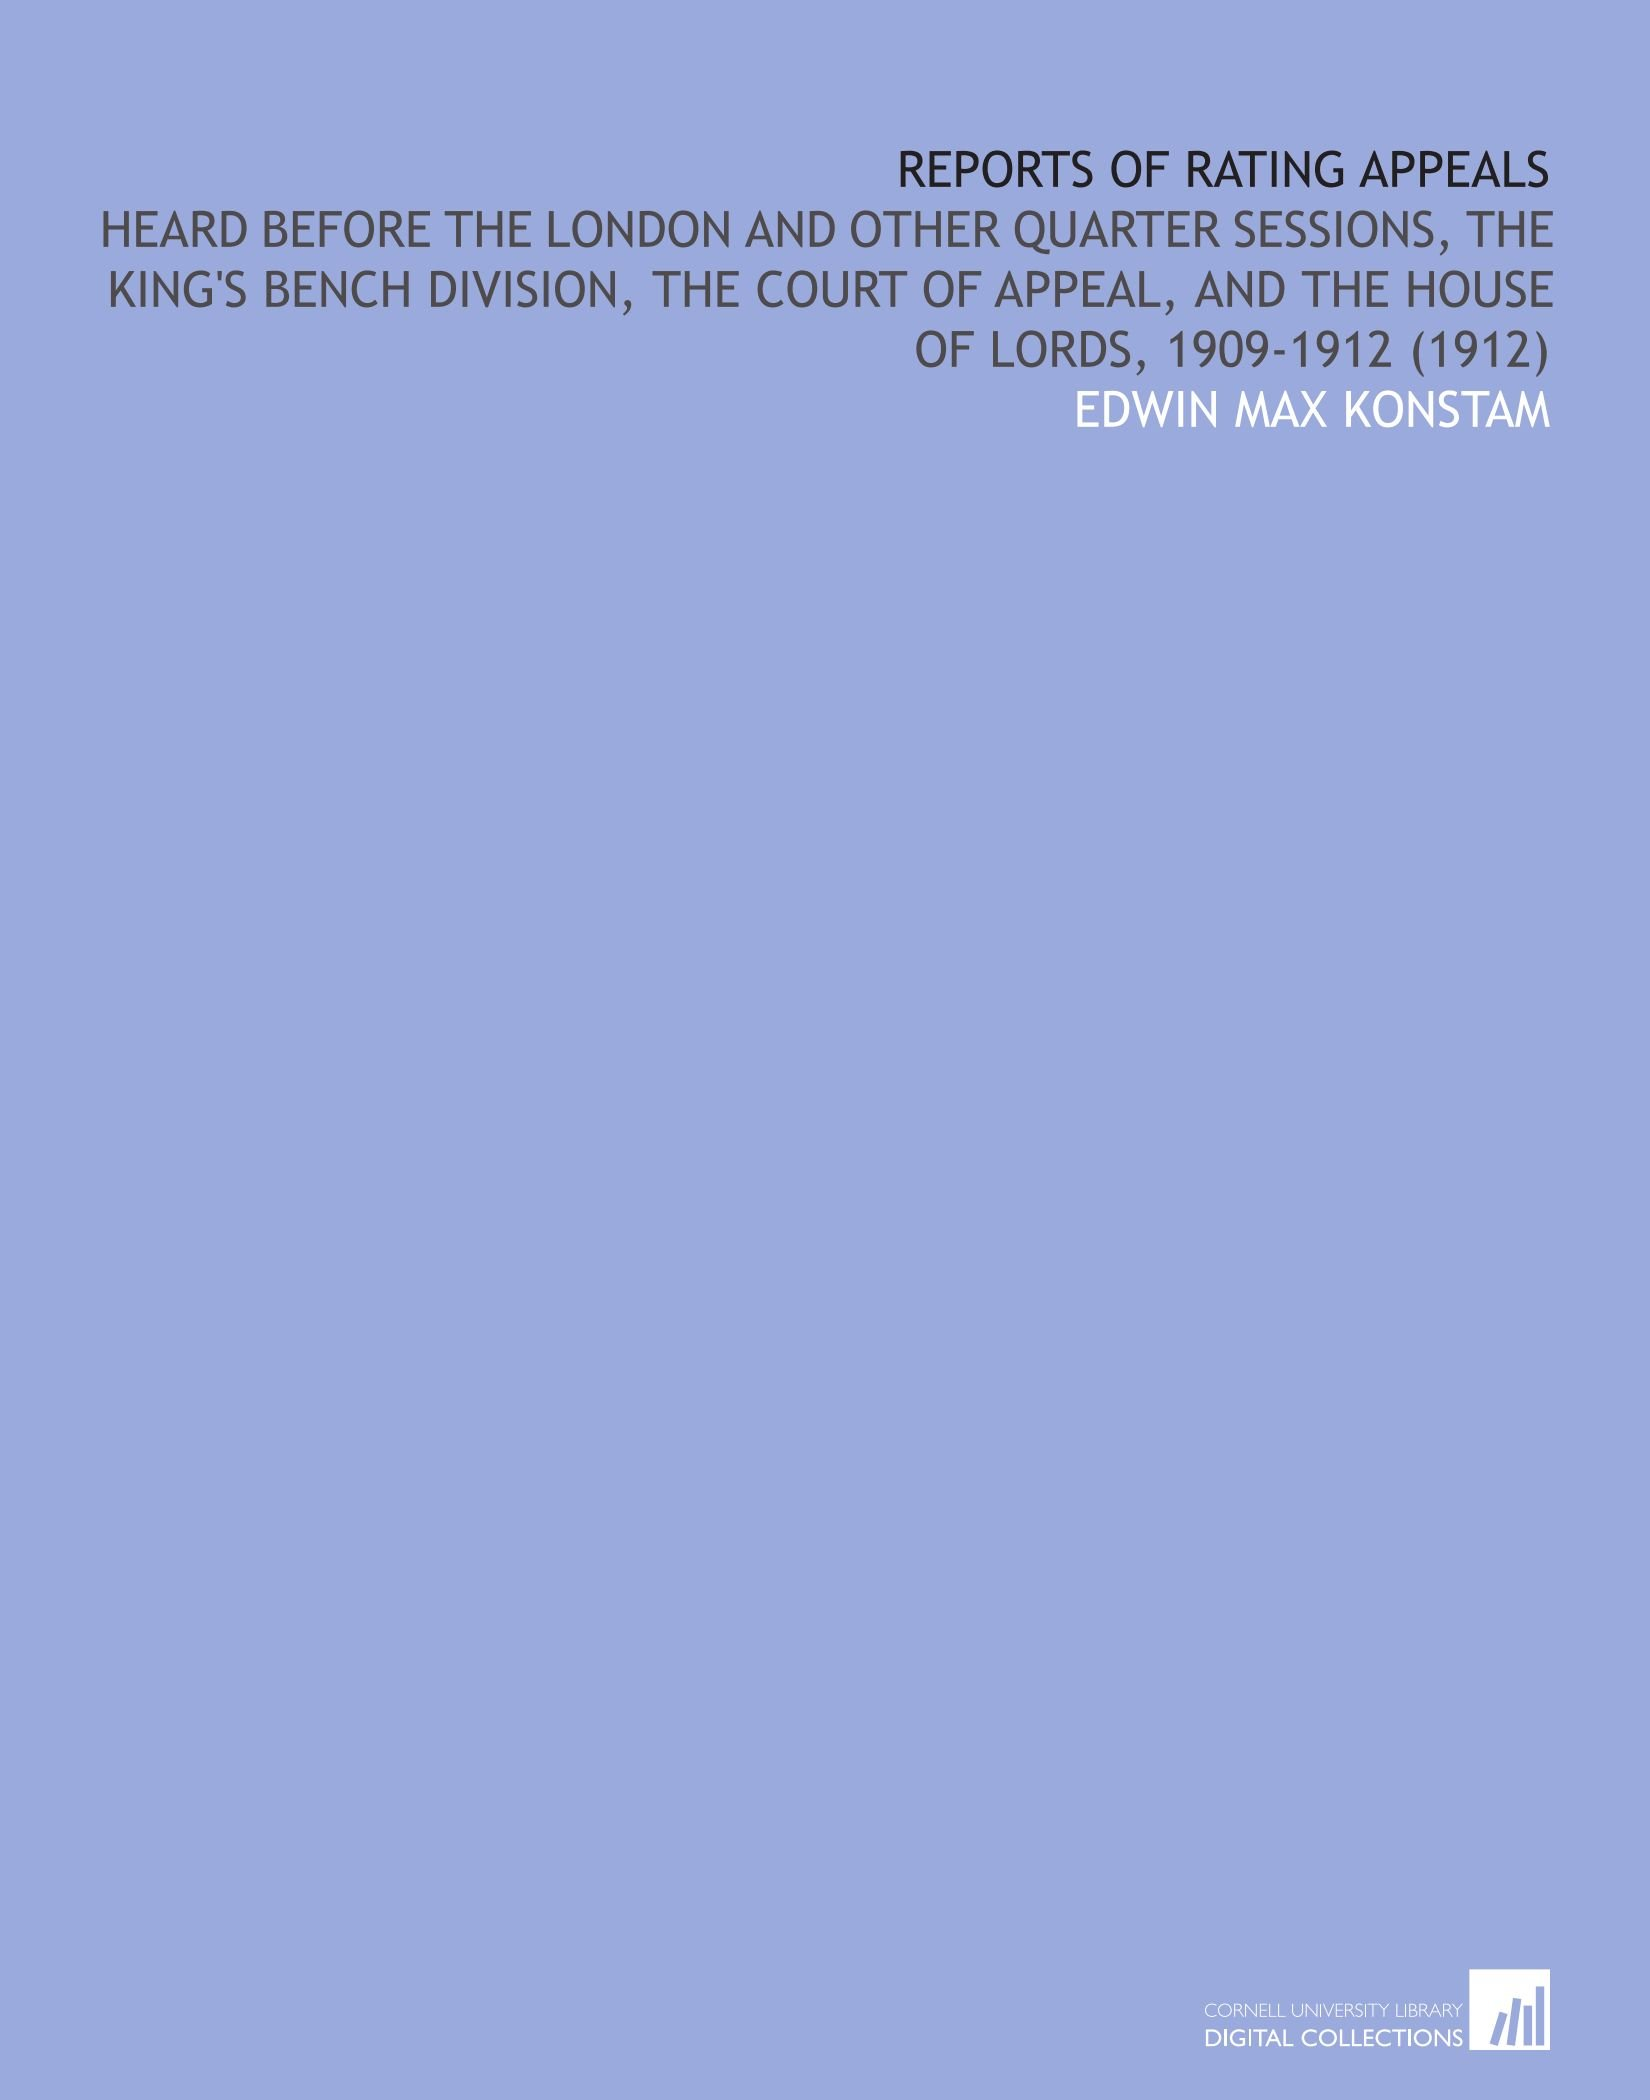 Reports of Rating Appeals: Heard Before the London and Other Quarter Sessions, the King's Bench Division, the Court of Appeal, and the House of Lords, 1909-1912 (1912) ebook